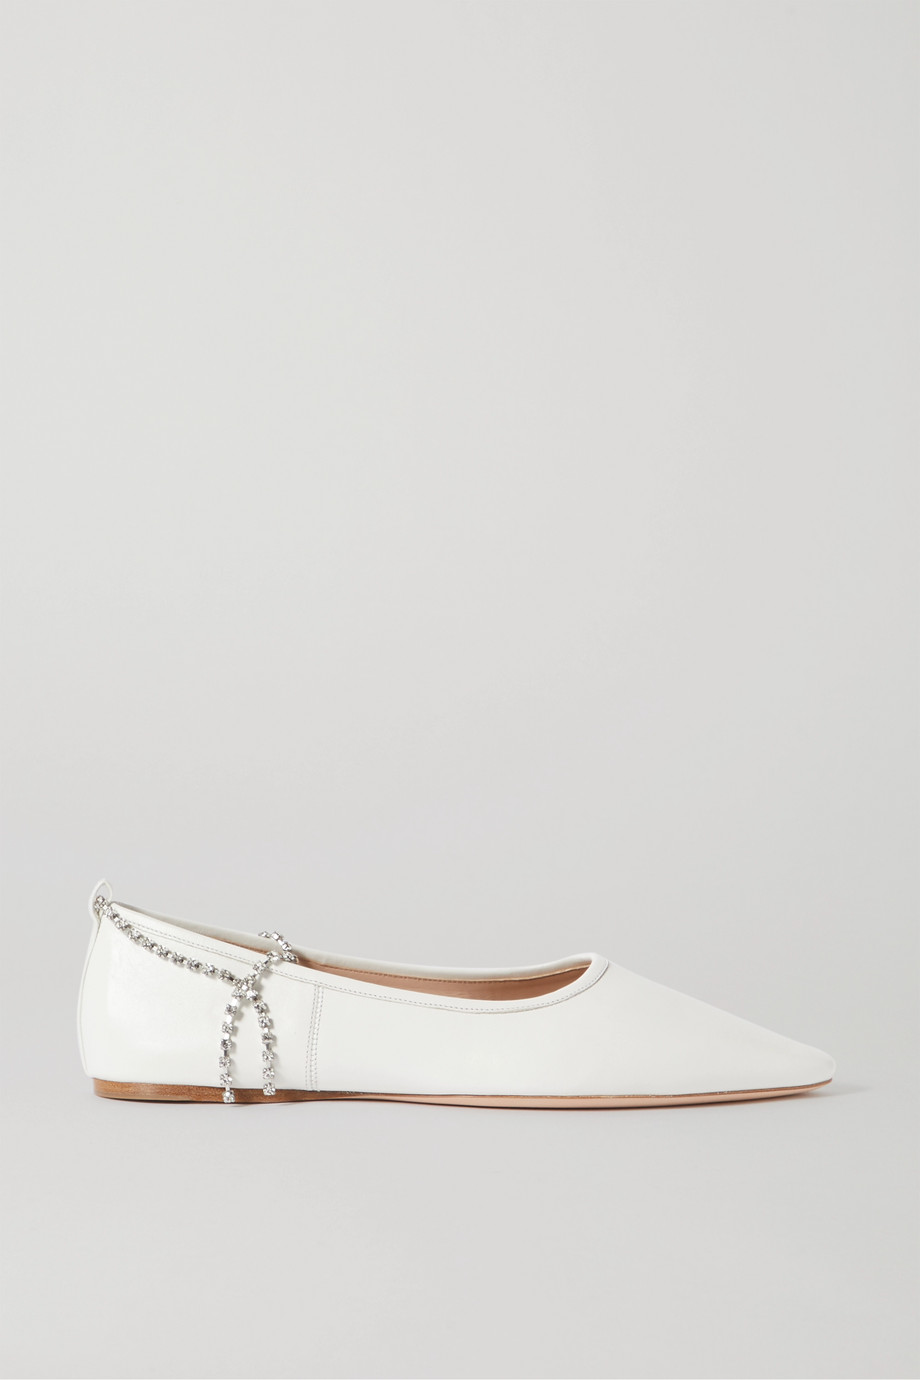 Miu Miu Crystal-embellished leather point-toe flats